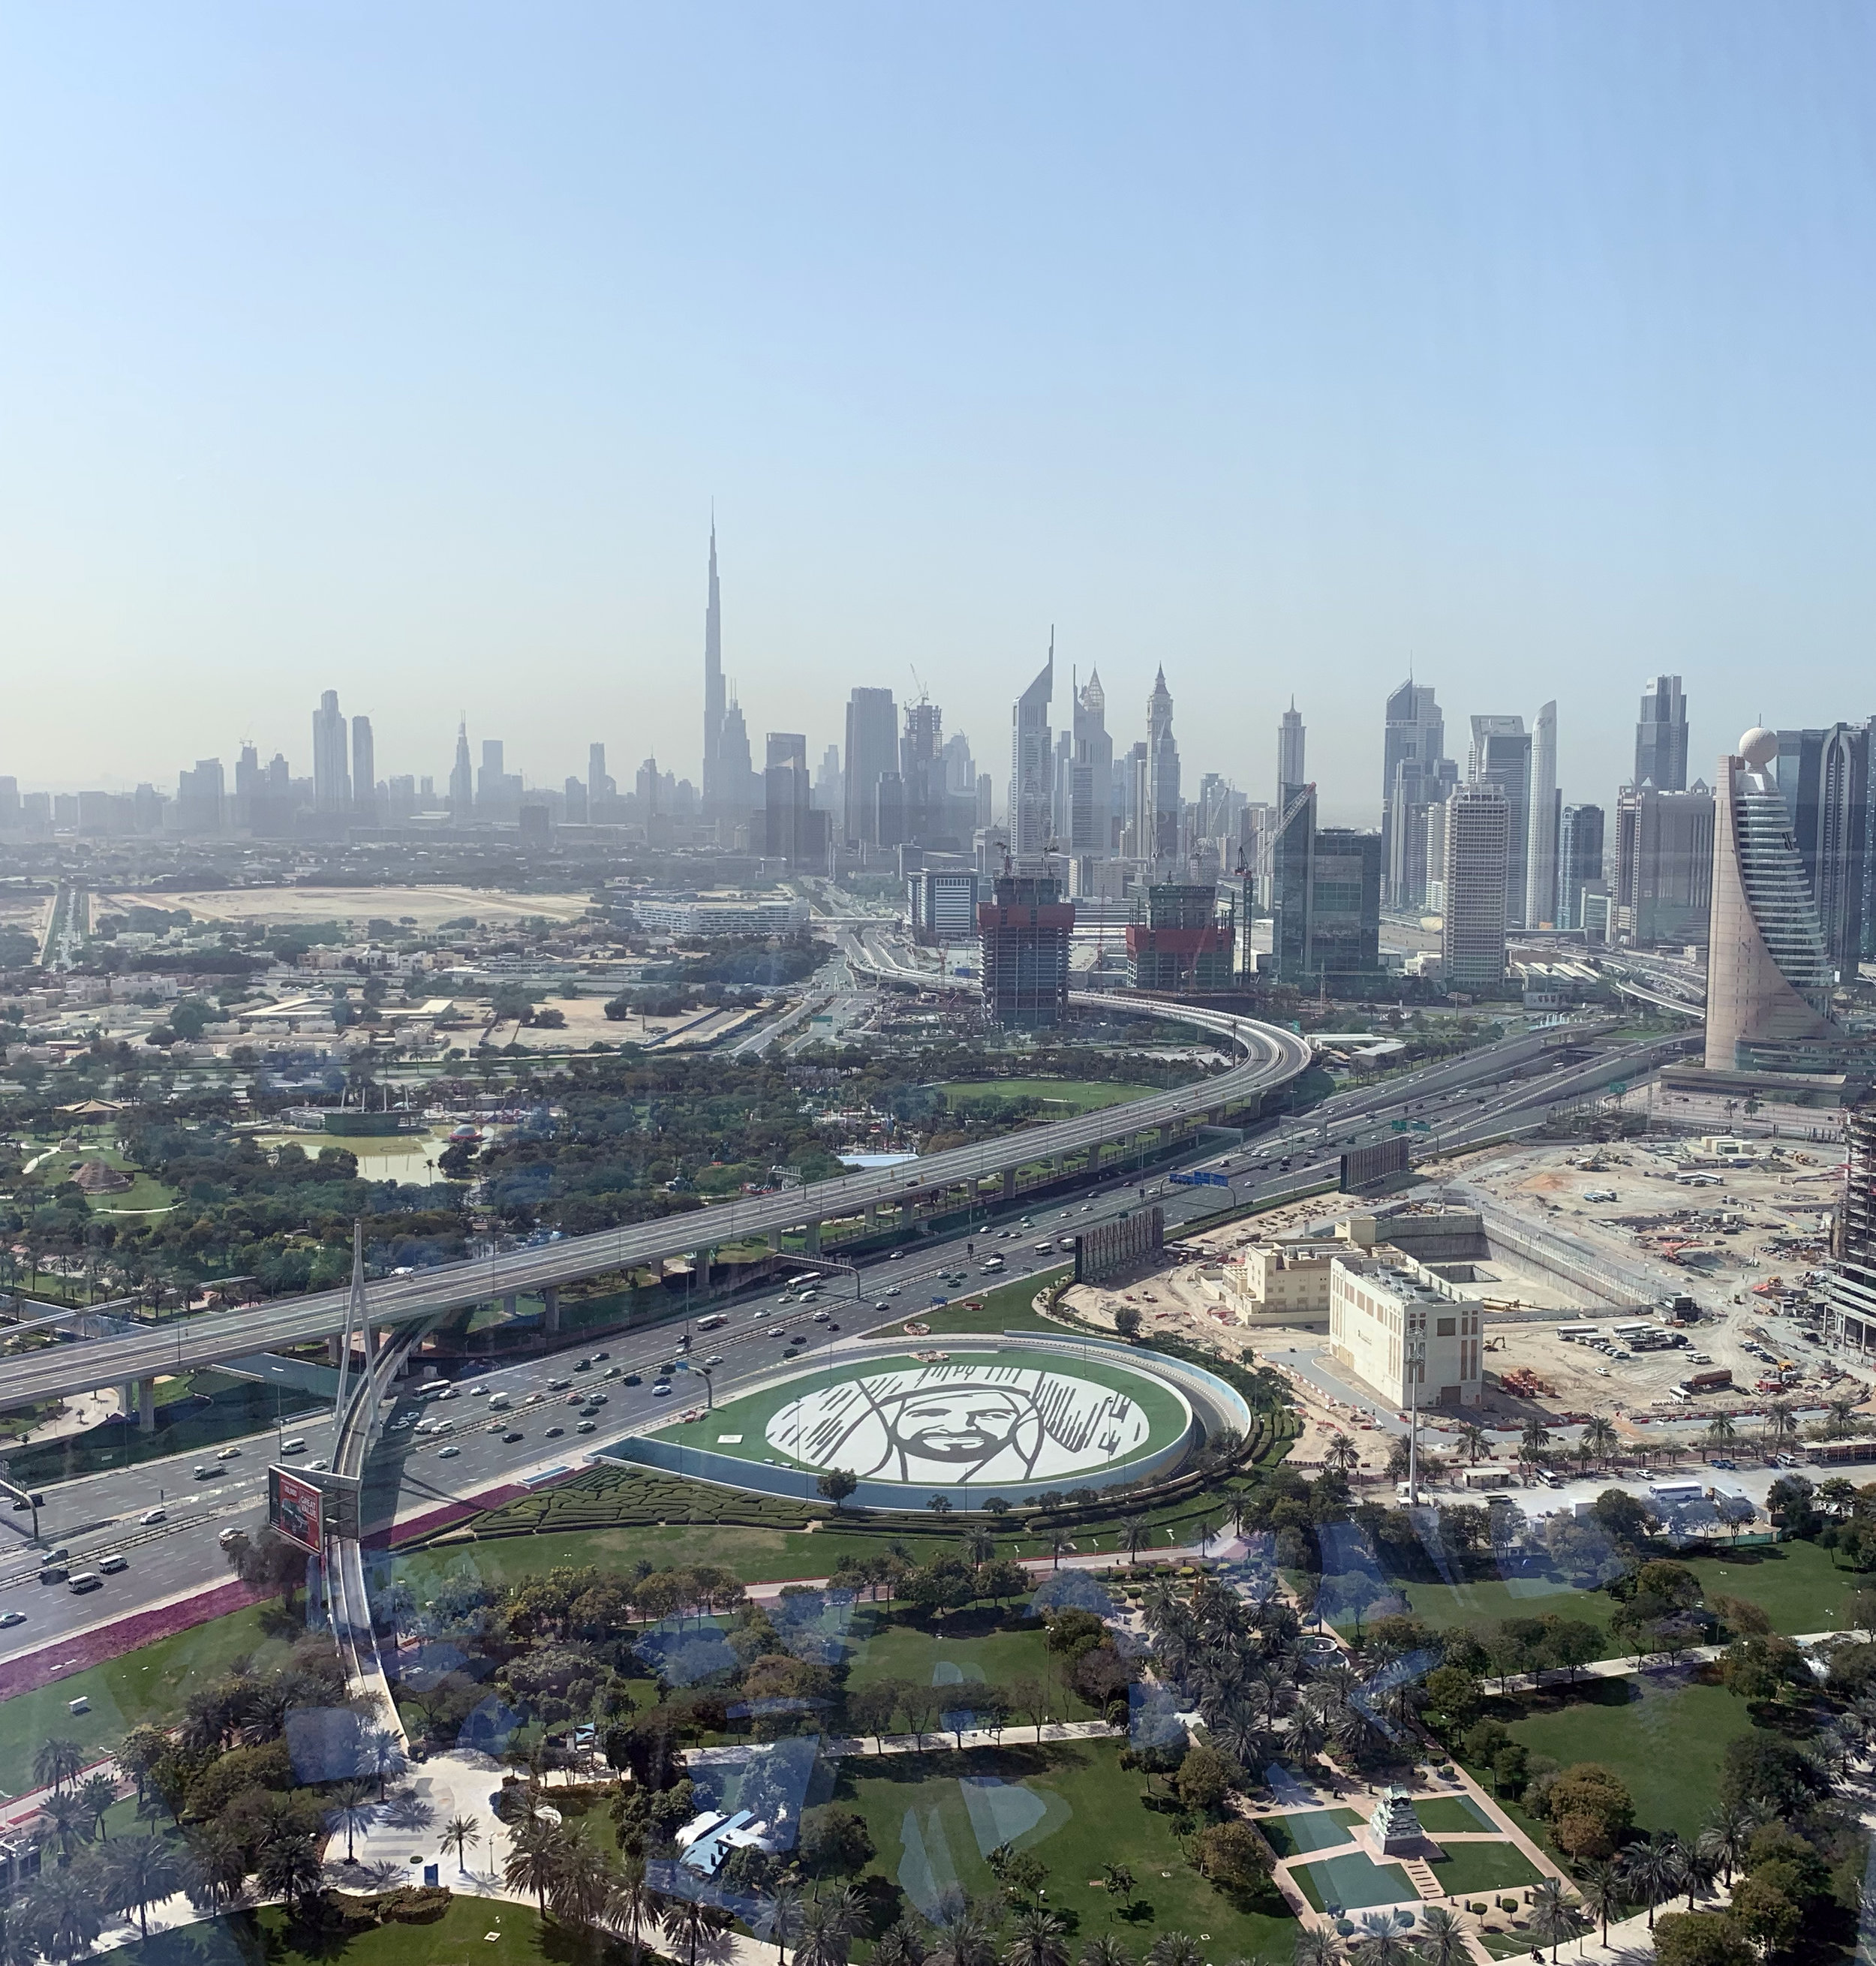 Out the other side of the Frame you can see New Dubai-complete with the Burj Khalifa